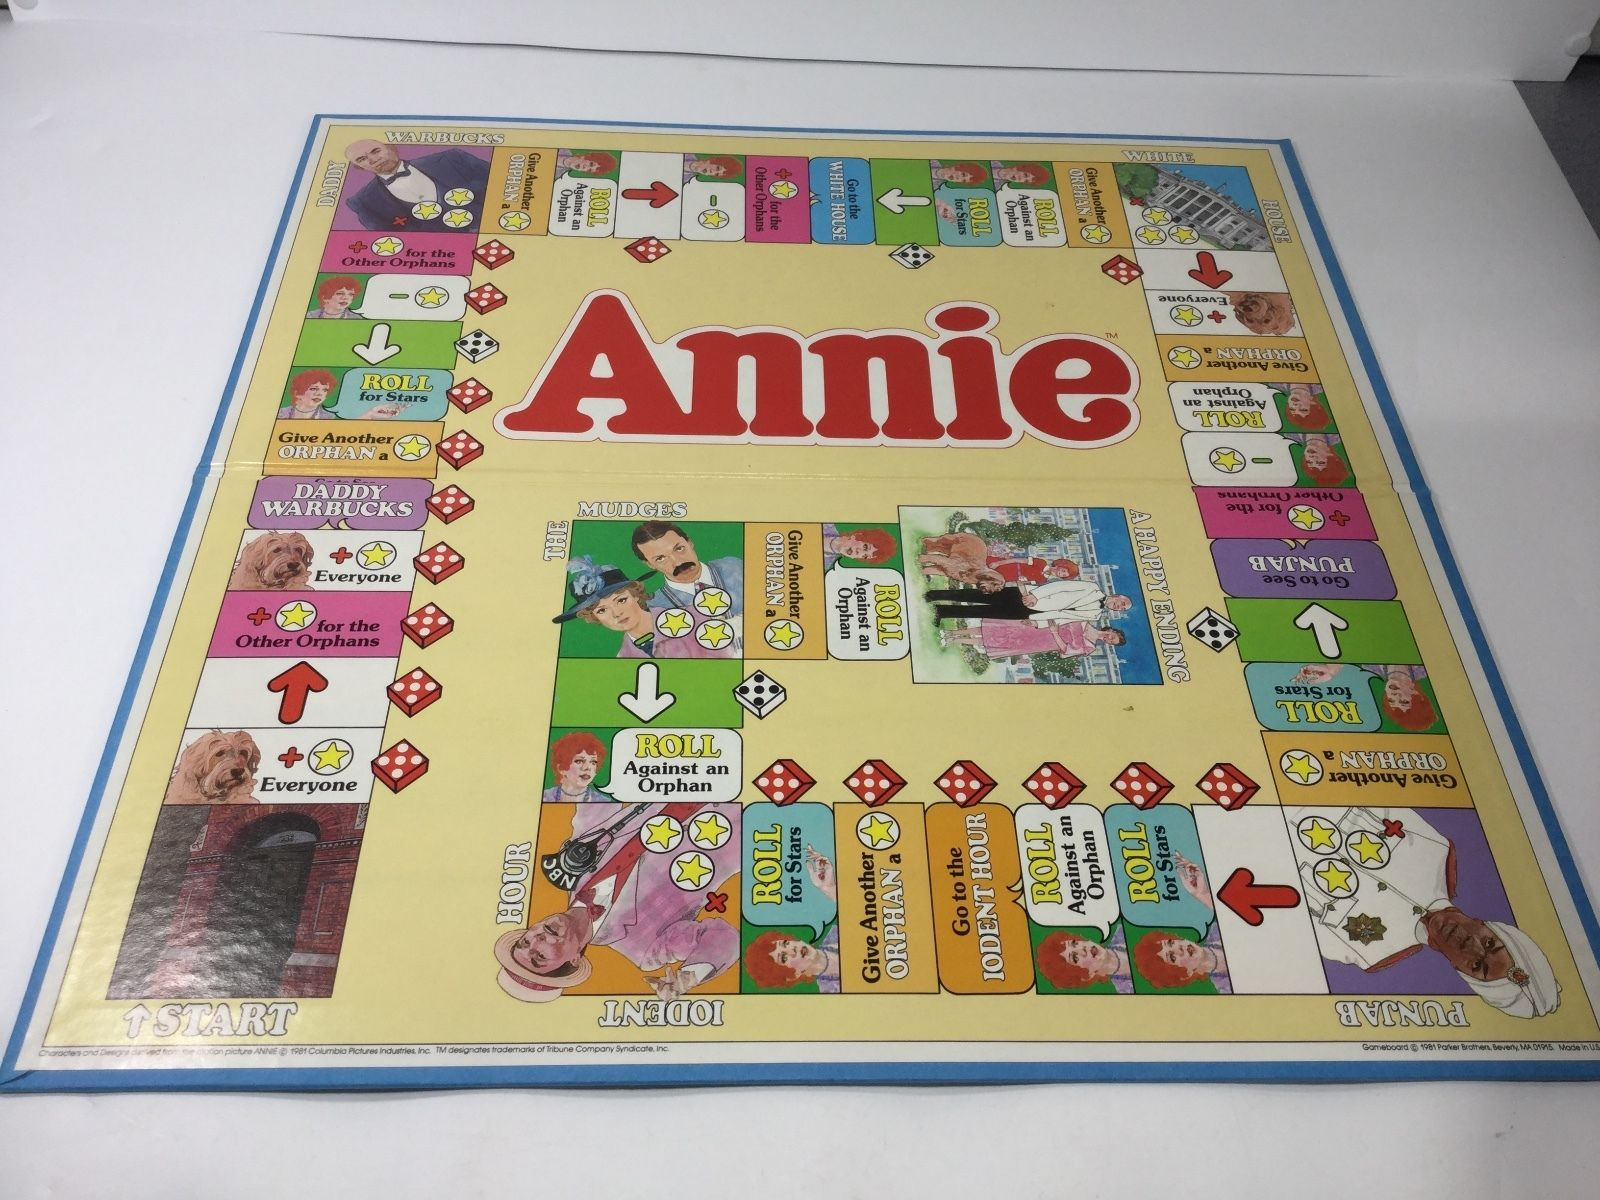 Vintage Annie The Path To Happiness Board Game 1981 Parker Brothers Complete Toys Hobbies Games Board Traditi Vintage Board Games Board Games Games